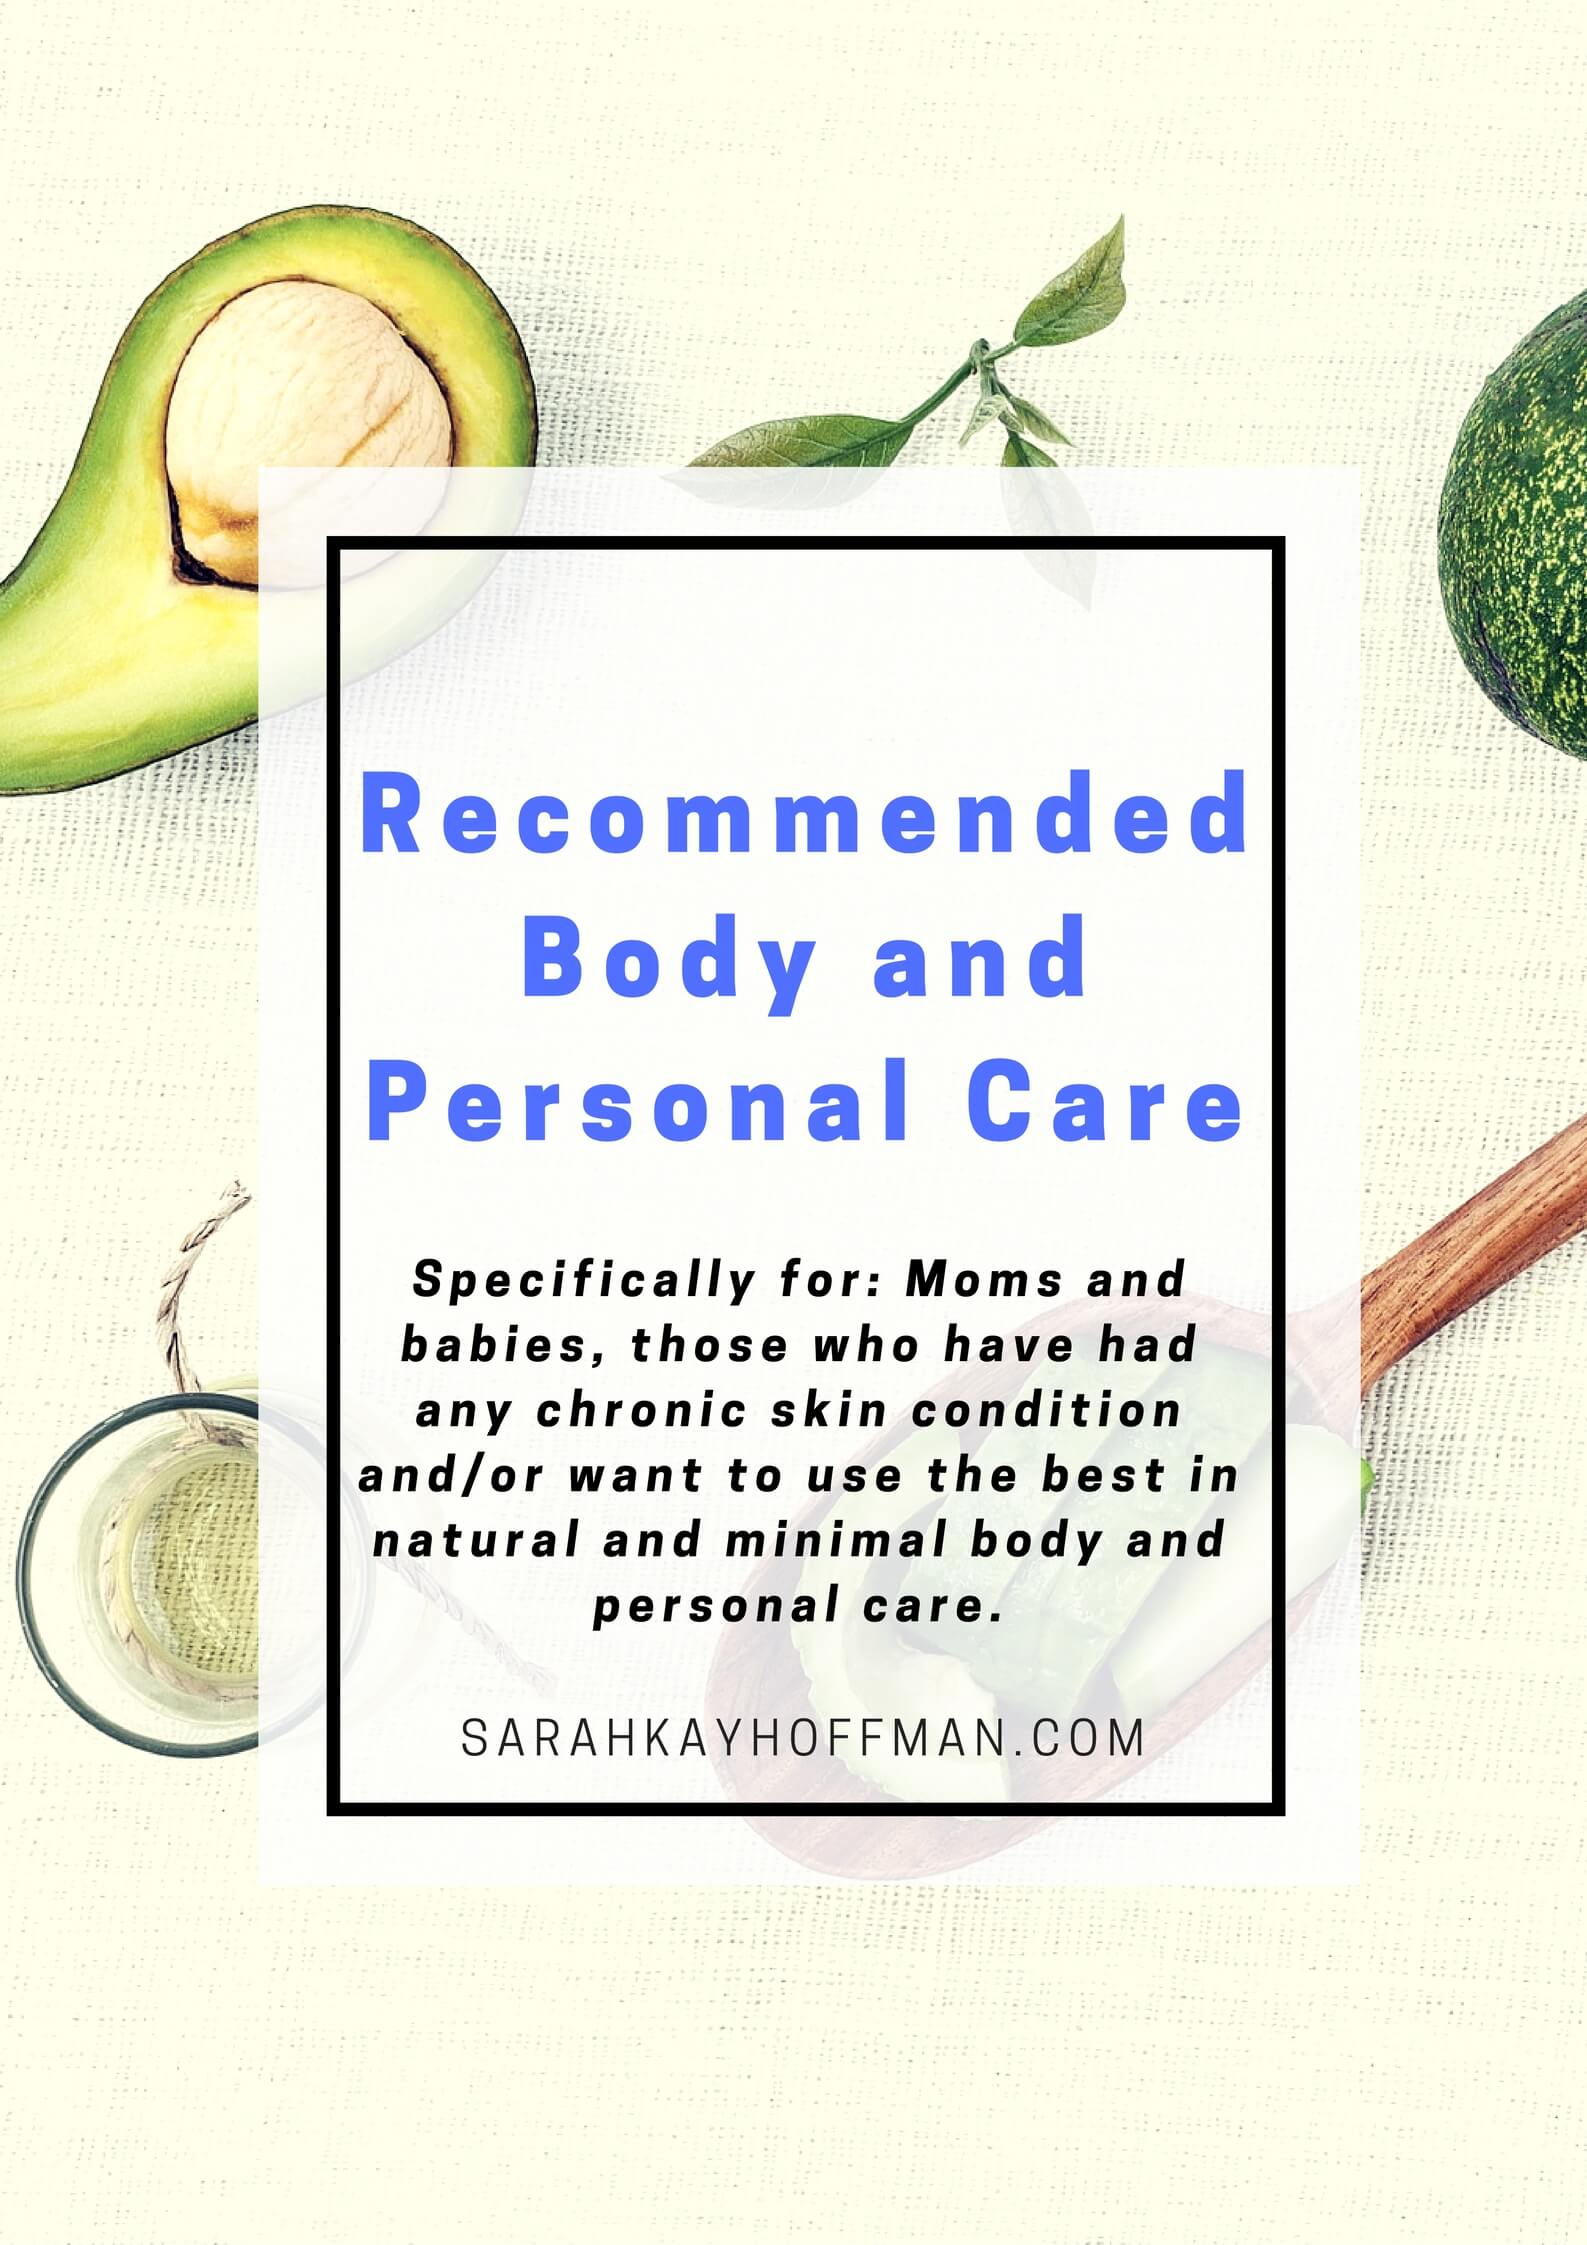 Recommended Body and Personal Care via sarahkayhoffman.com